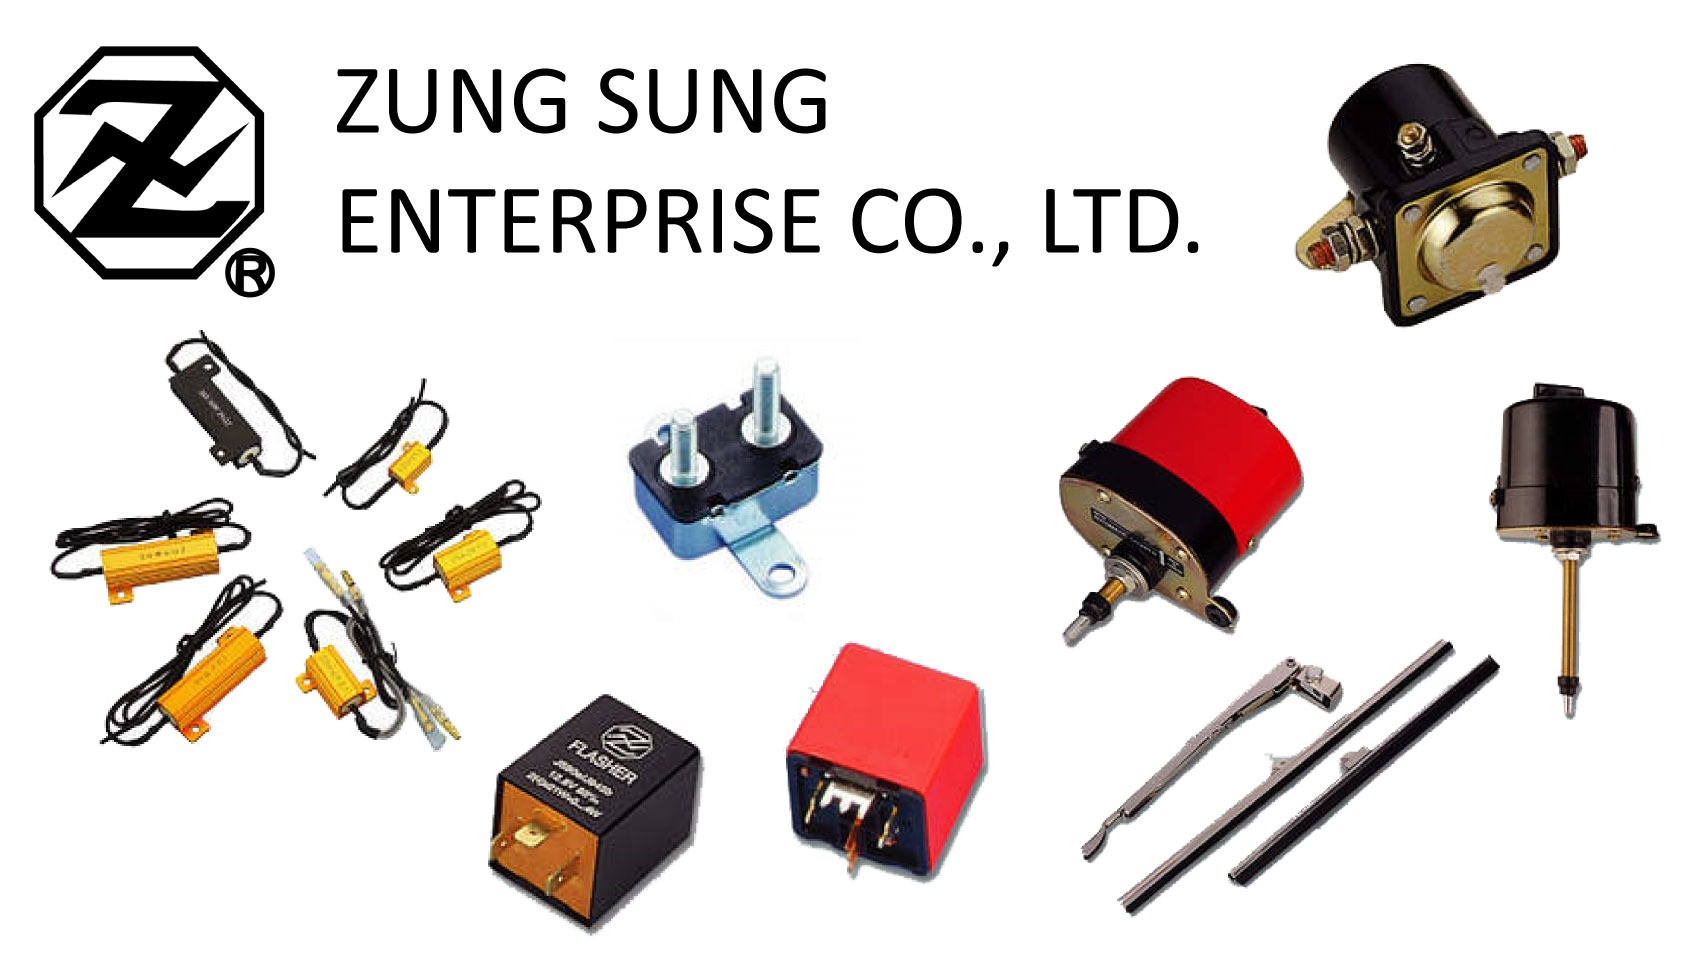 Resistor Relay, Flasher Relay, Circuit Breaker, Wiper Arm, Wipers, Relay Series, Starter Solenoids for Sensor & Relay made by ZUNG SUNG ENTERPRISE CO., LTD. 積順企業有限公司 – MatchSupplier.com